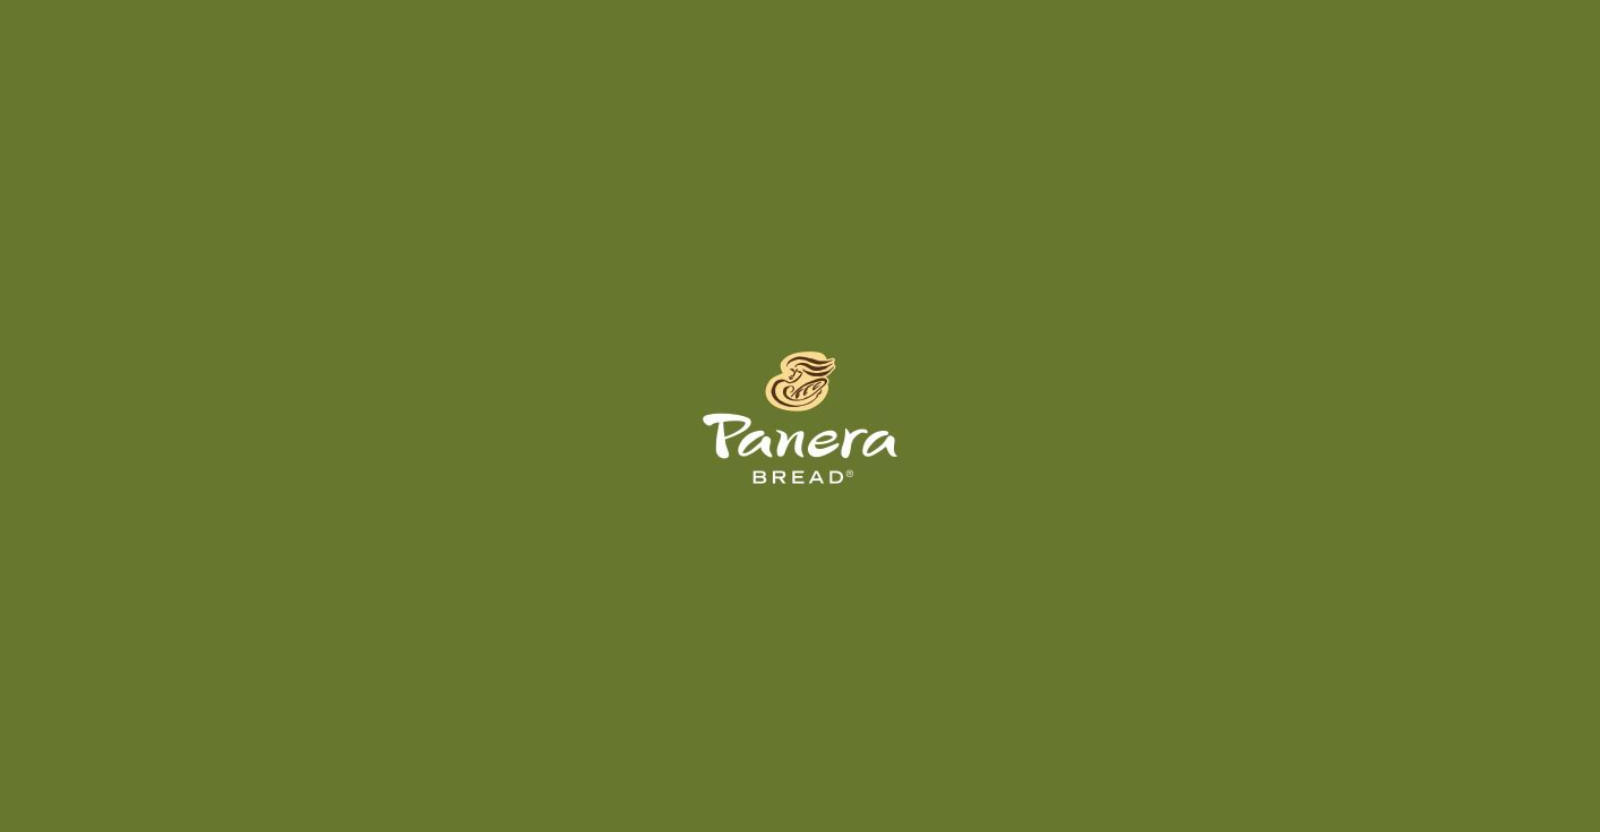 Does Panera Bread Have A Gluten Free Menu  Panera Bread Gluten Free Menu No Gluten